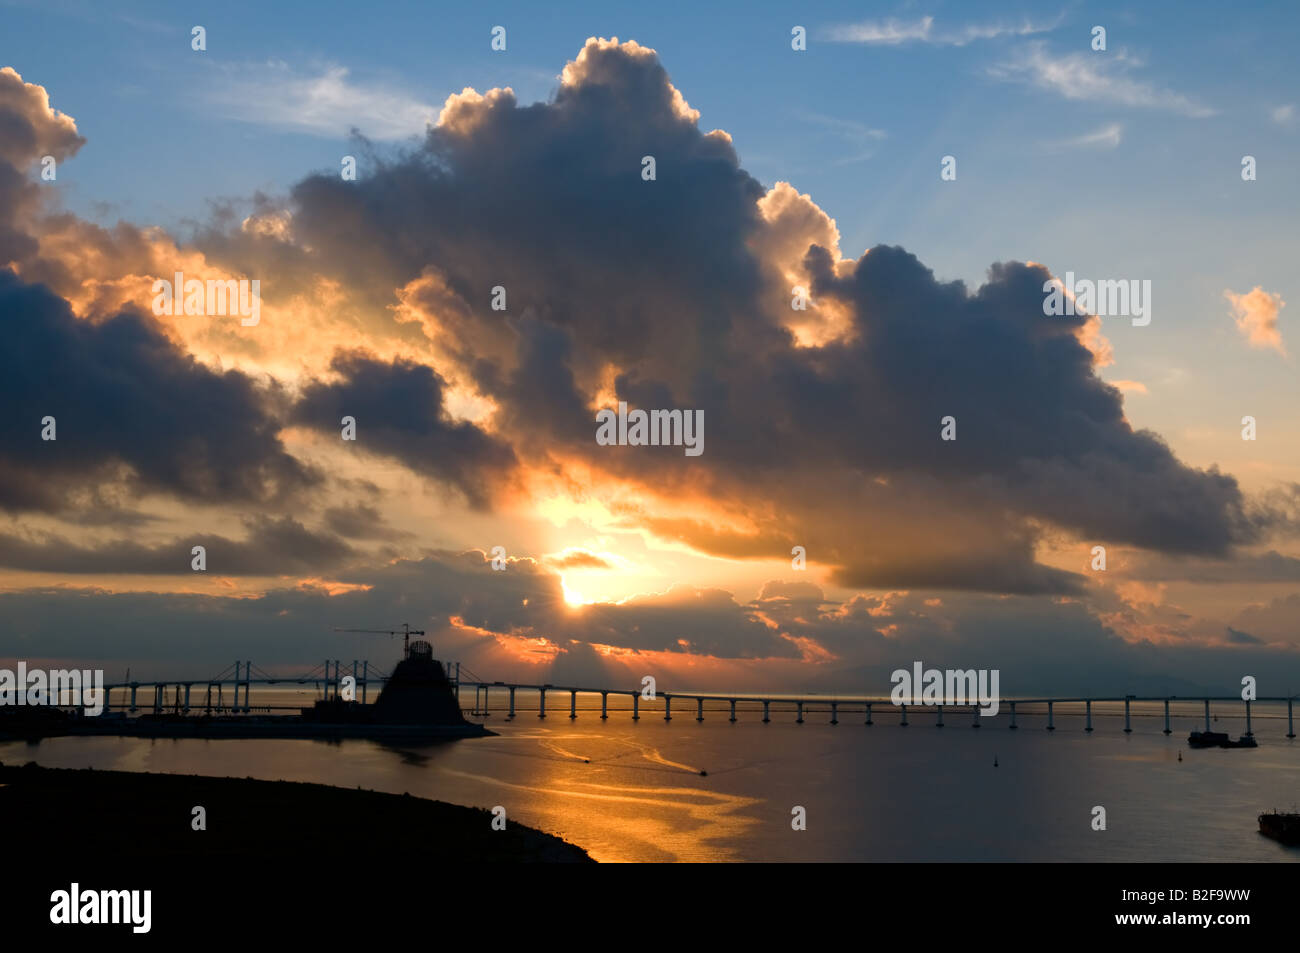 The panorama of friendship birdge and the under constructing Macau Science Center at daybreak - Stock Image